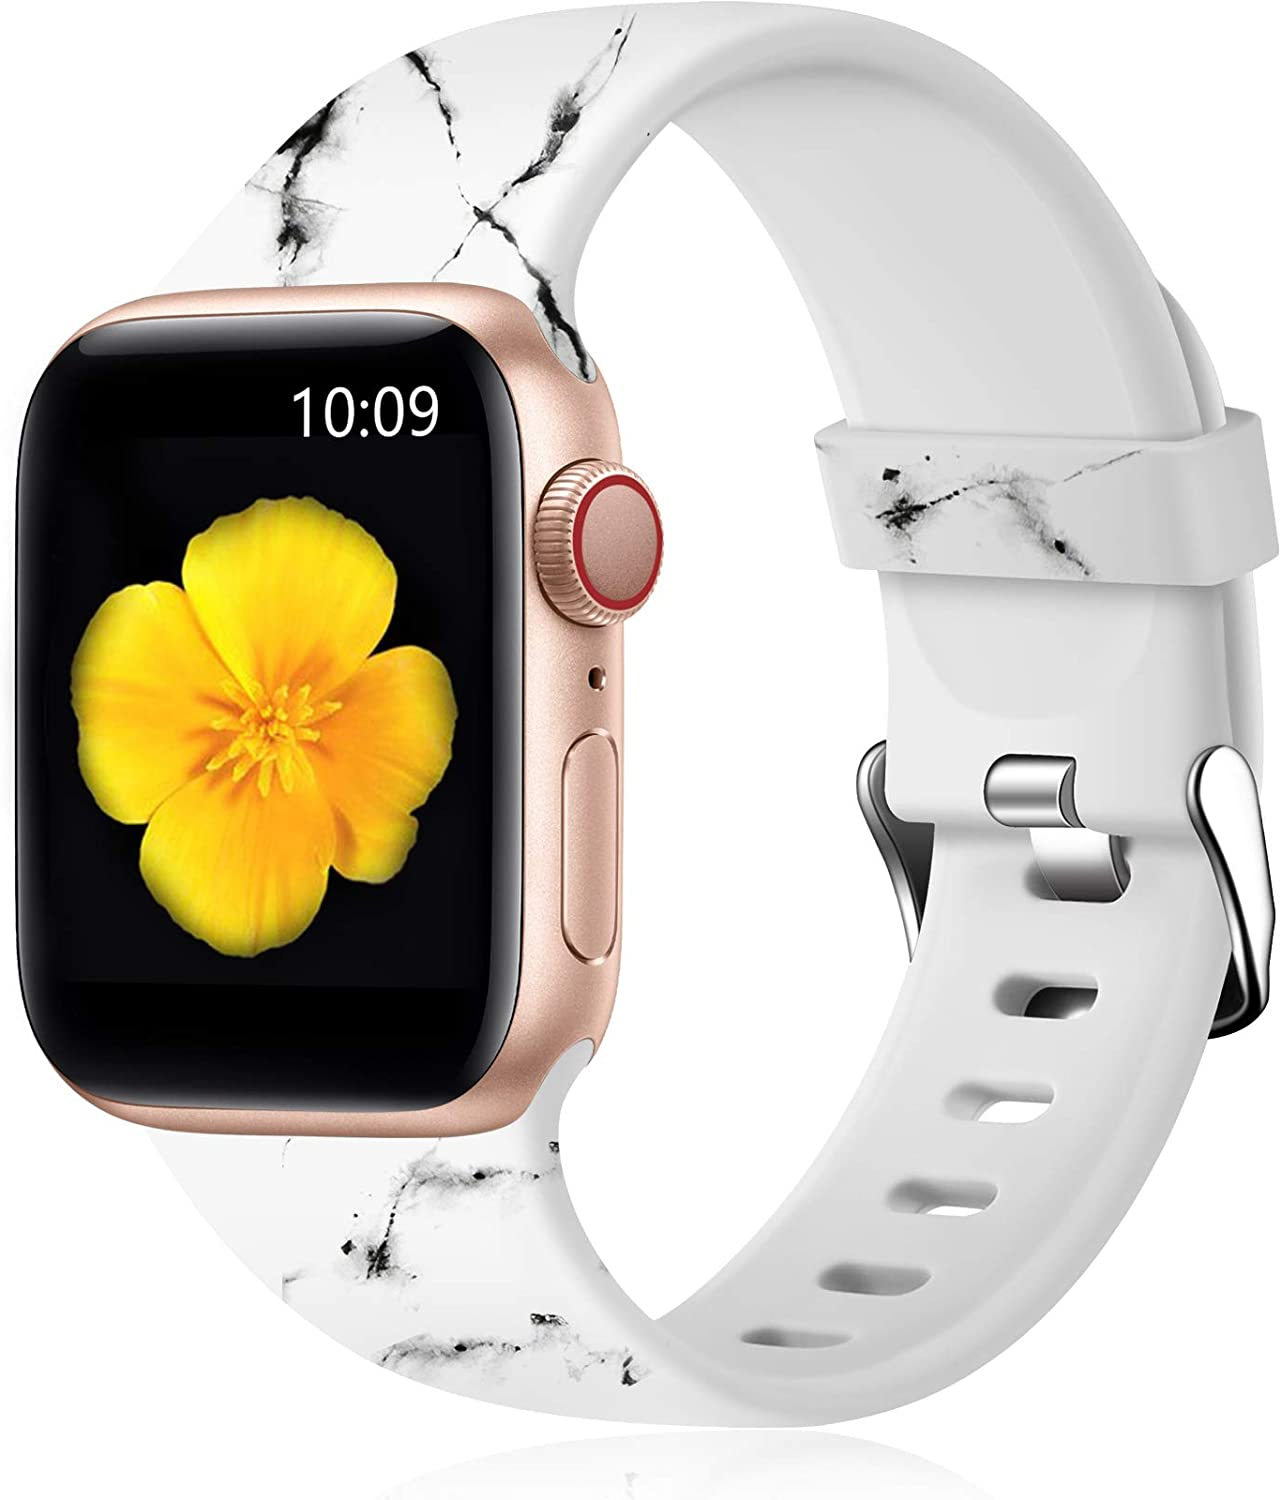 Easuny Floral Band Compatible with Apple Watch SE 40mm 38mm Women - Floral Soft Pattern Printed Cute Fadeless Silicone Replacement Wristband for iWatch Series 6 5 4 3 2 1 Girls,White-Black Marble,S/M